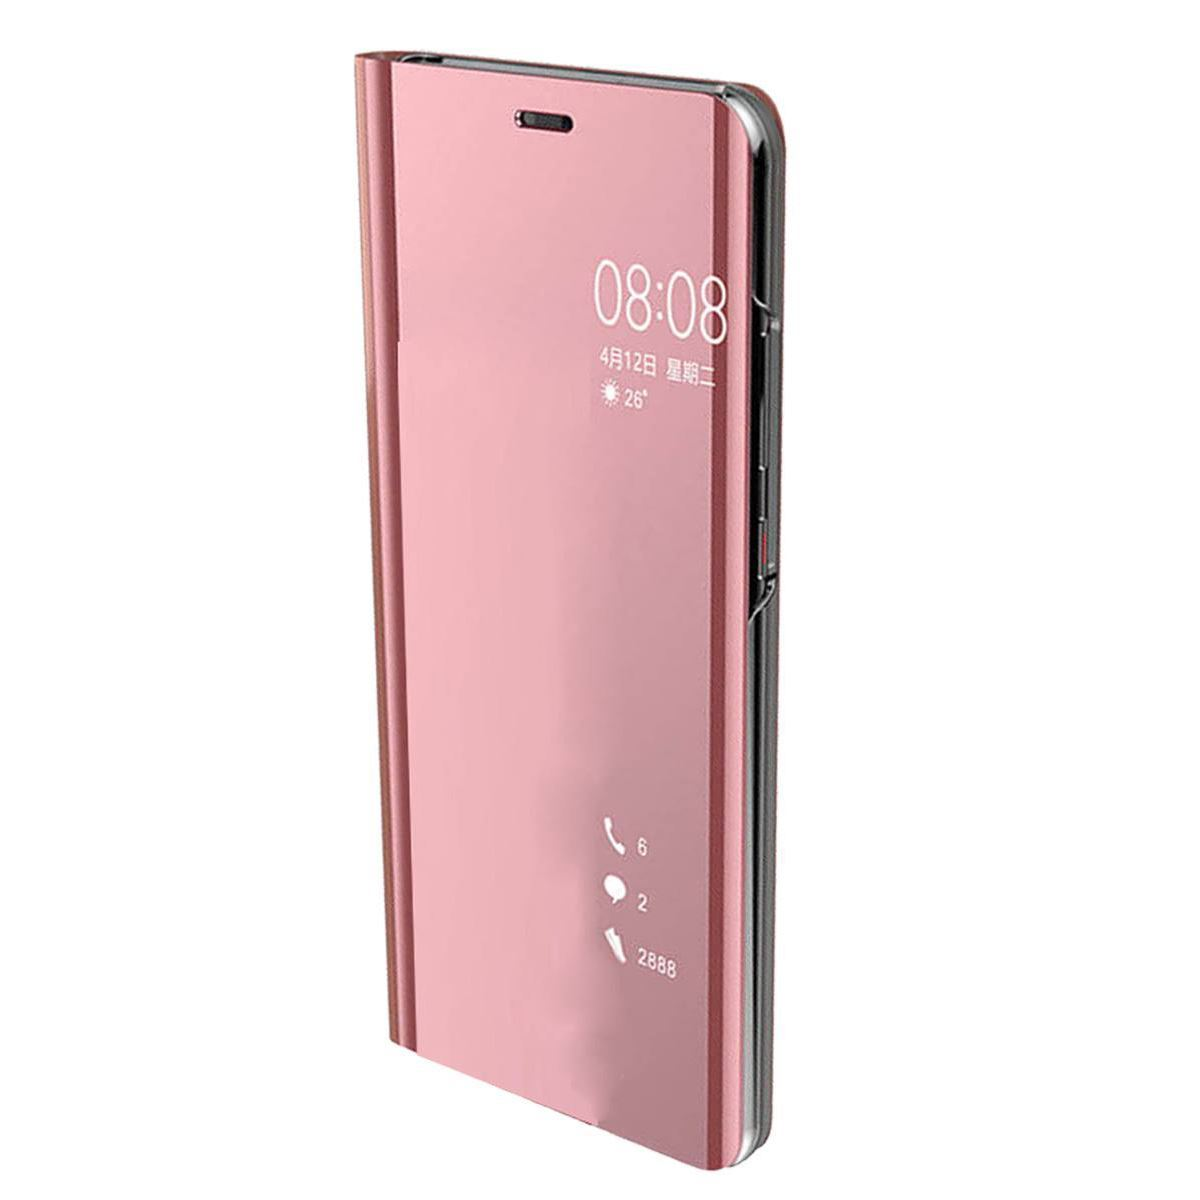 Huawei P10 Case Smart View Mirror Flip Stand Cover - Rose Gold